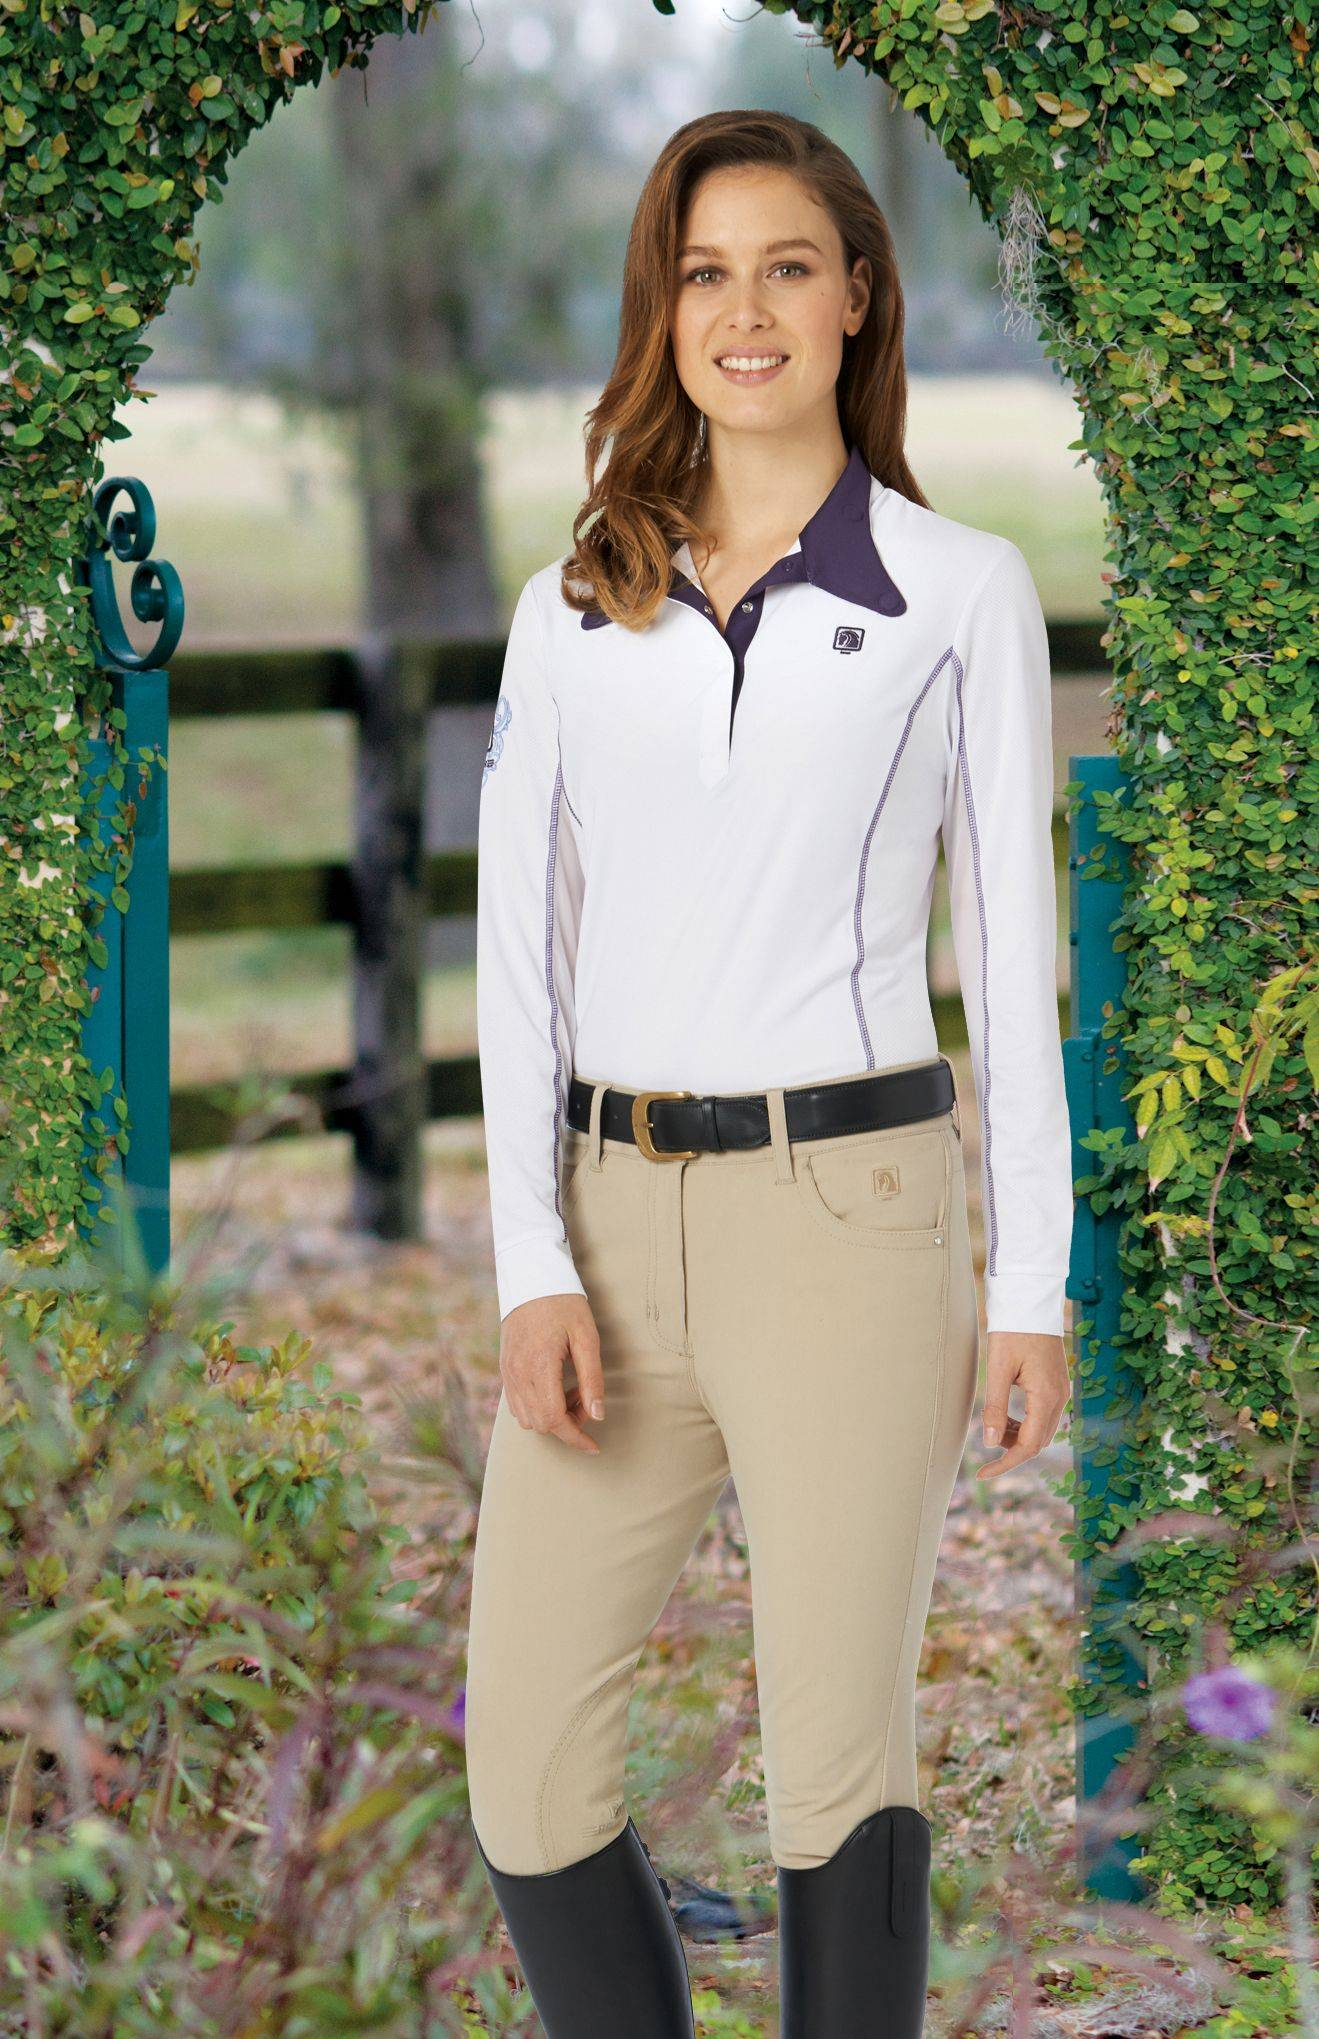 Romfh Ladies' St Tropez Knee Patch Breeches